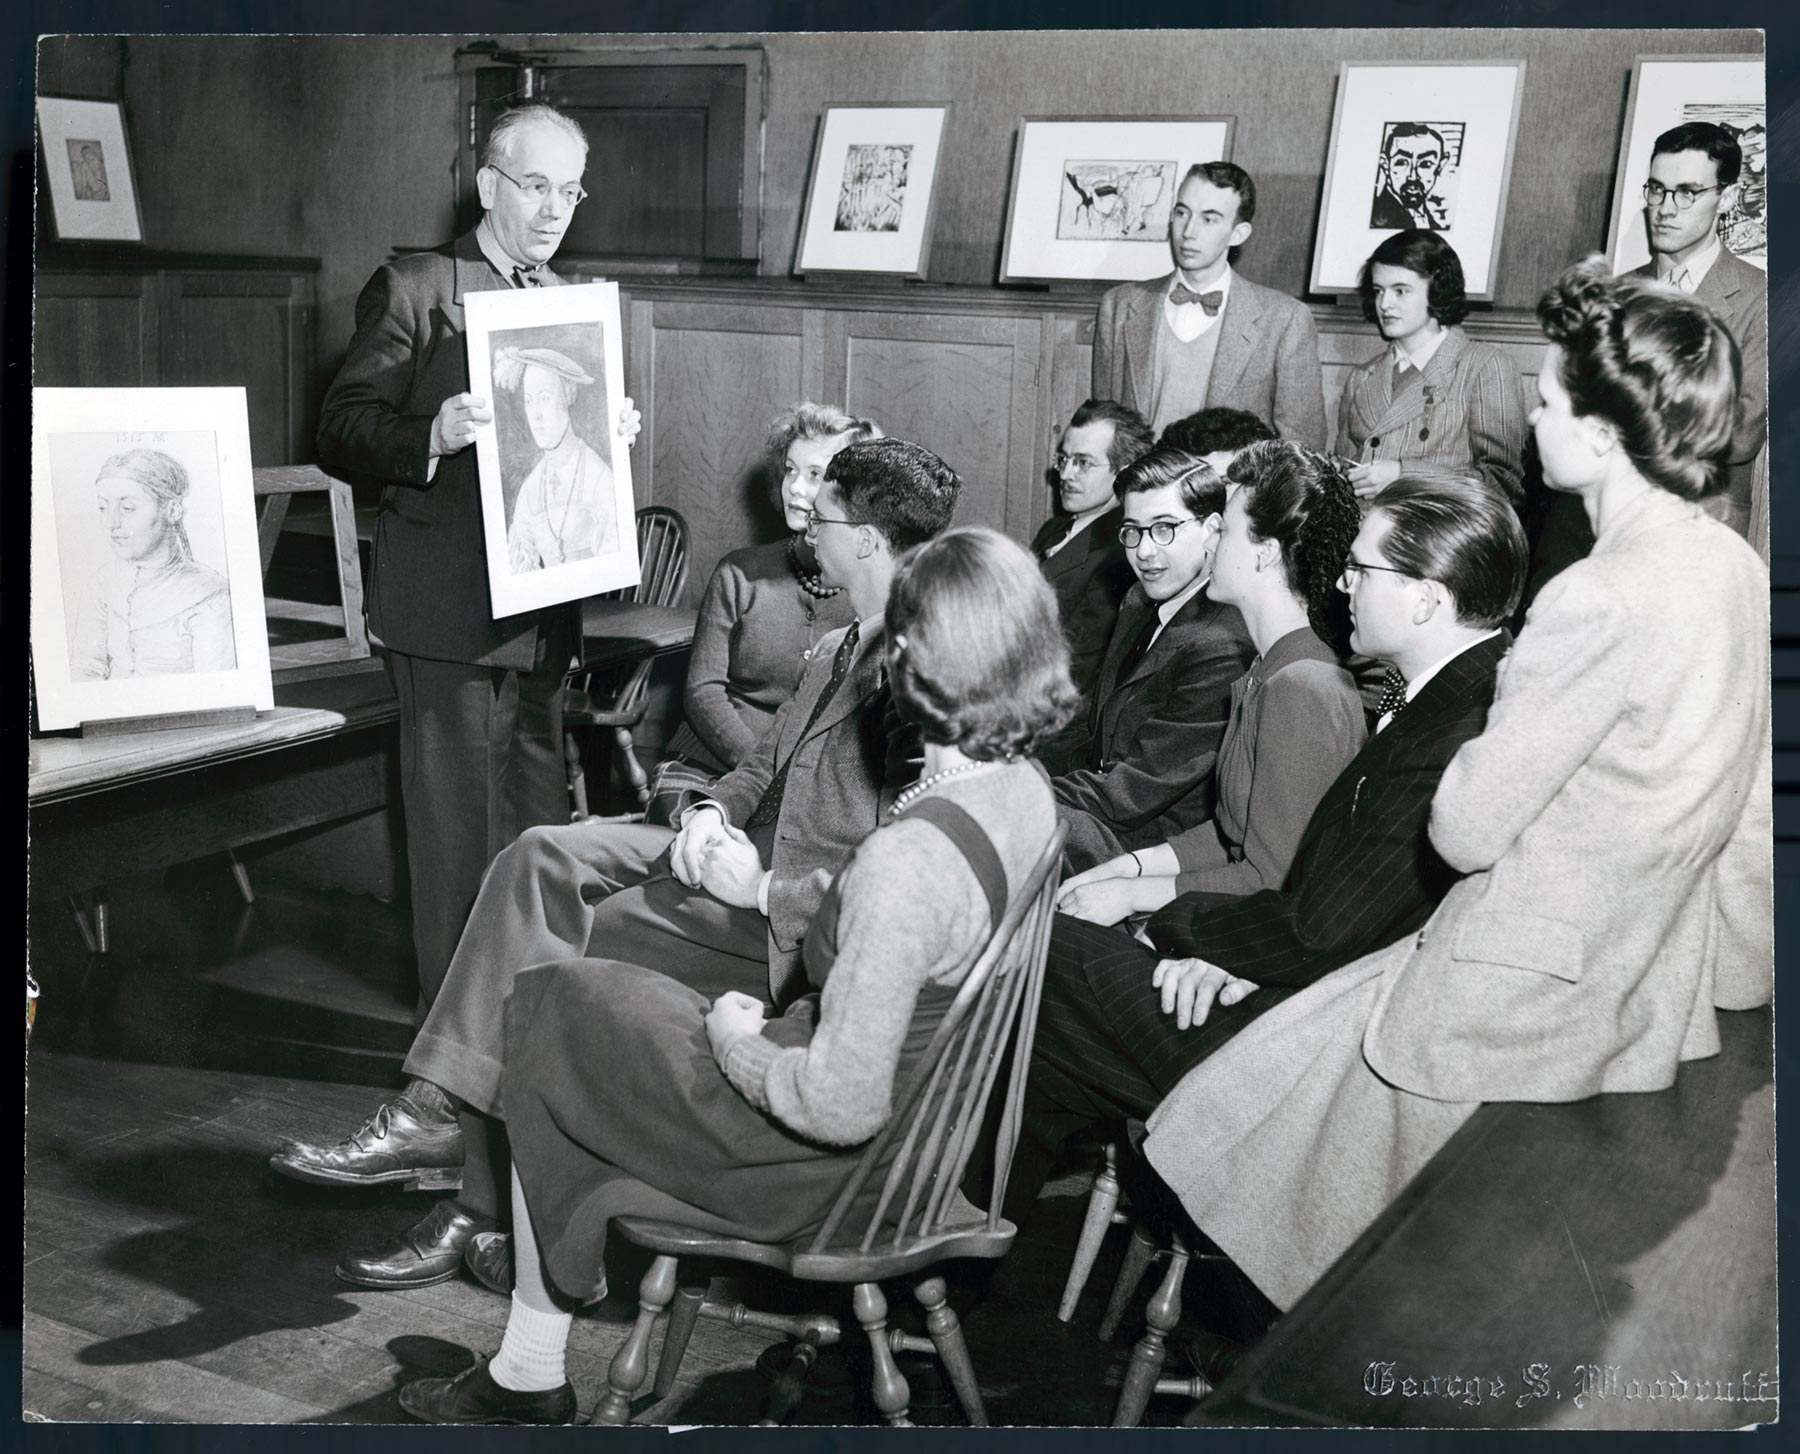 Rosenberg stands in front of a classroom holding a print to show students, some of whom are sitting and some of whom are standing. Another print sits on a nearby easel, and several prints rest on a shelf along the wall.